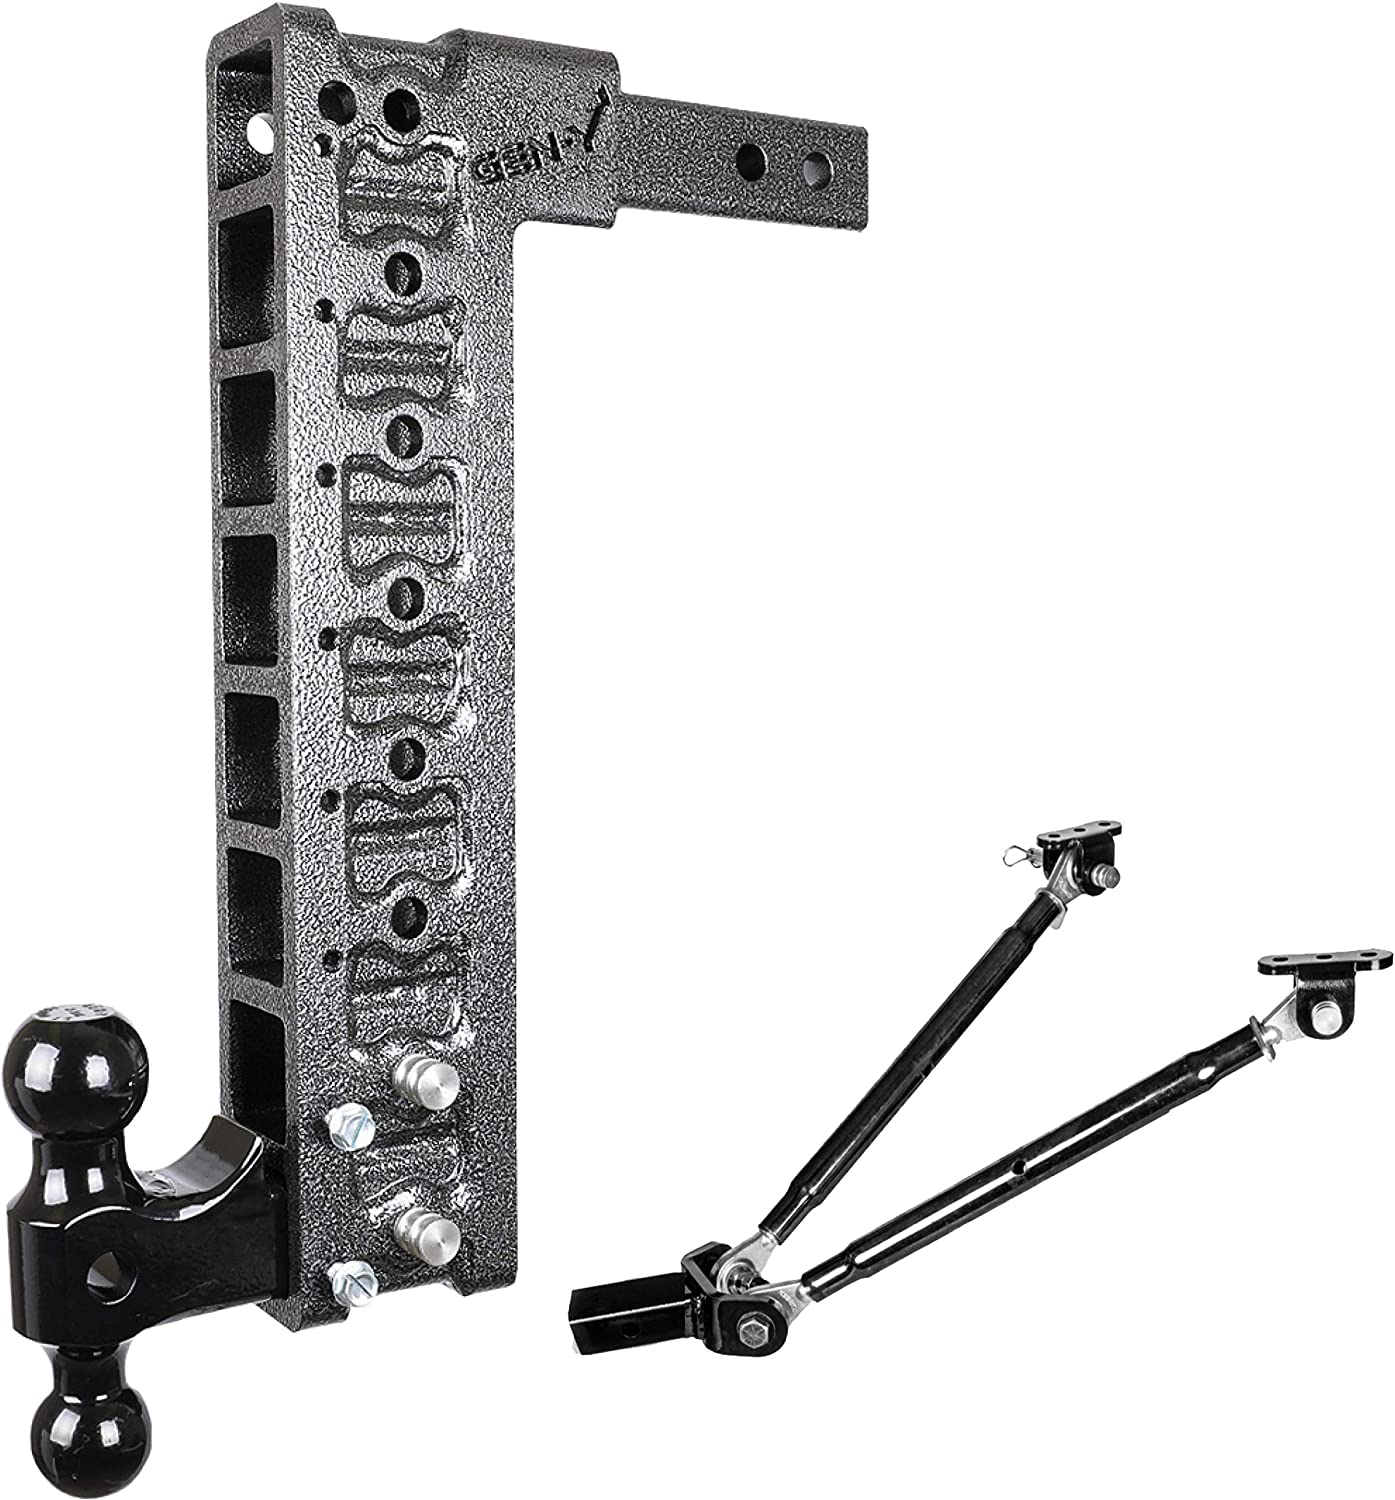 2.5 Weight Distribution Kit for any 2 GENY Drop Hitch /& Ball Mount at any Drop Height